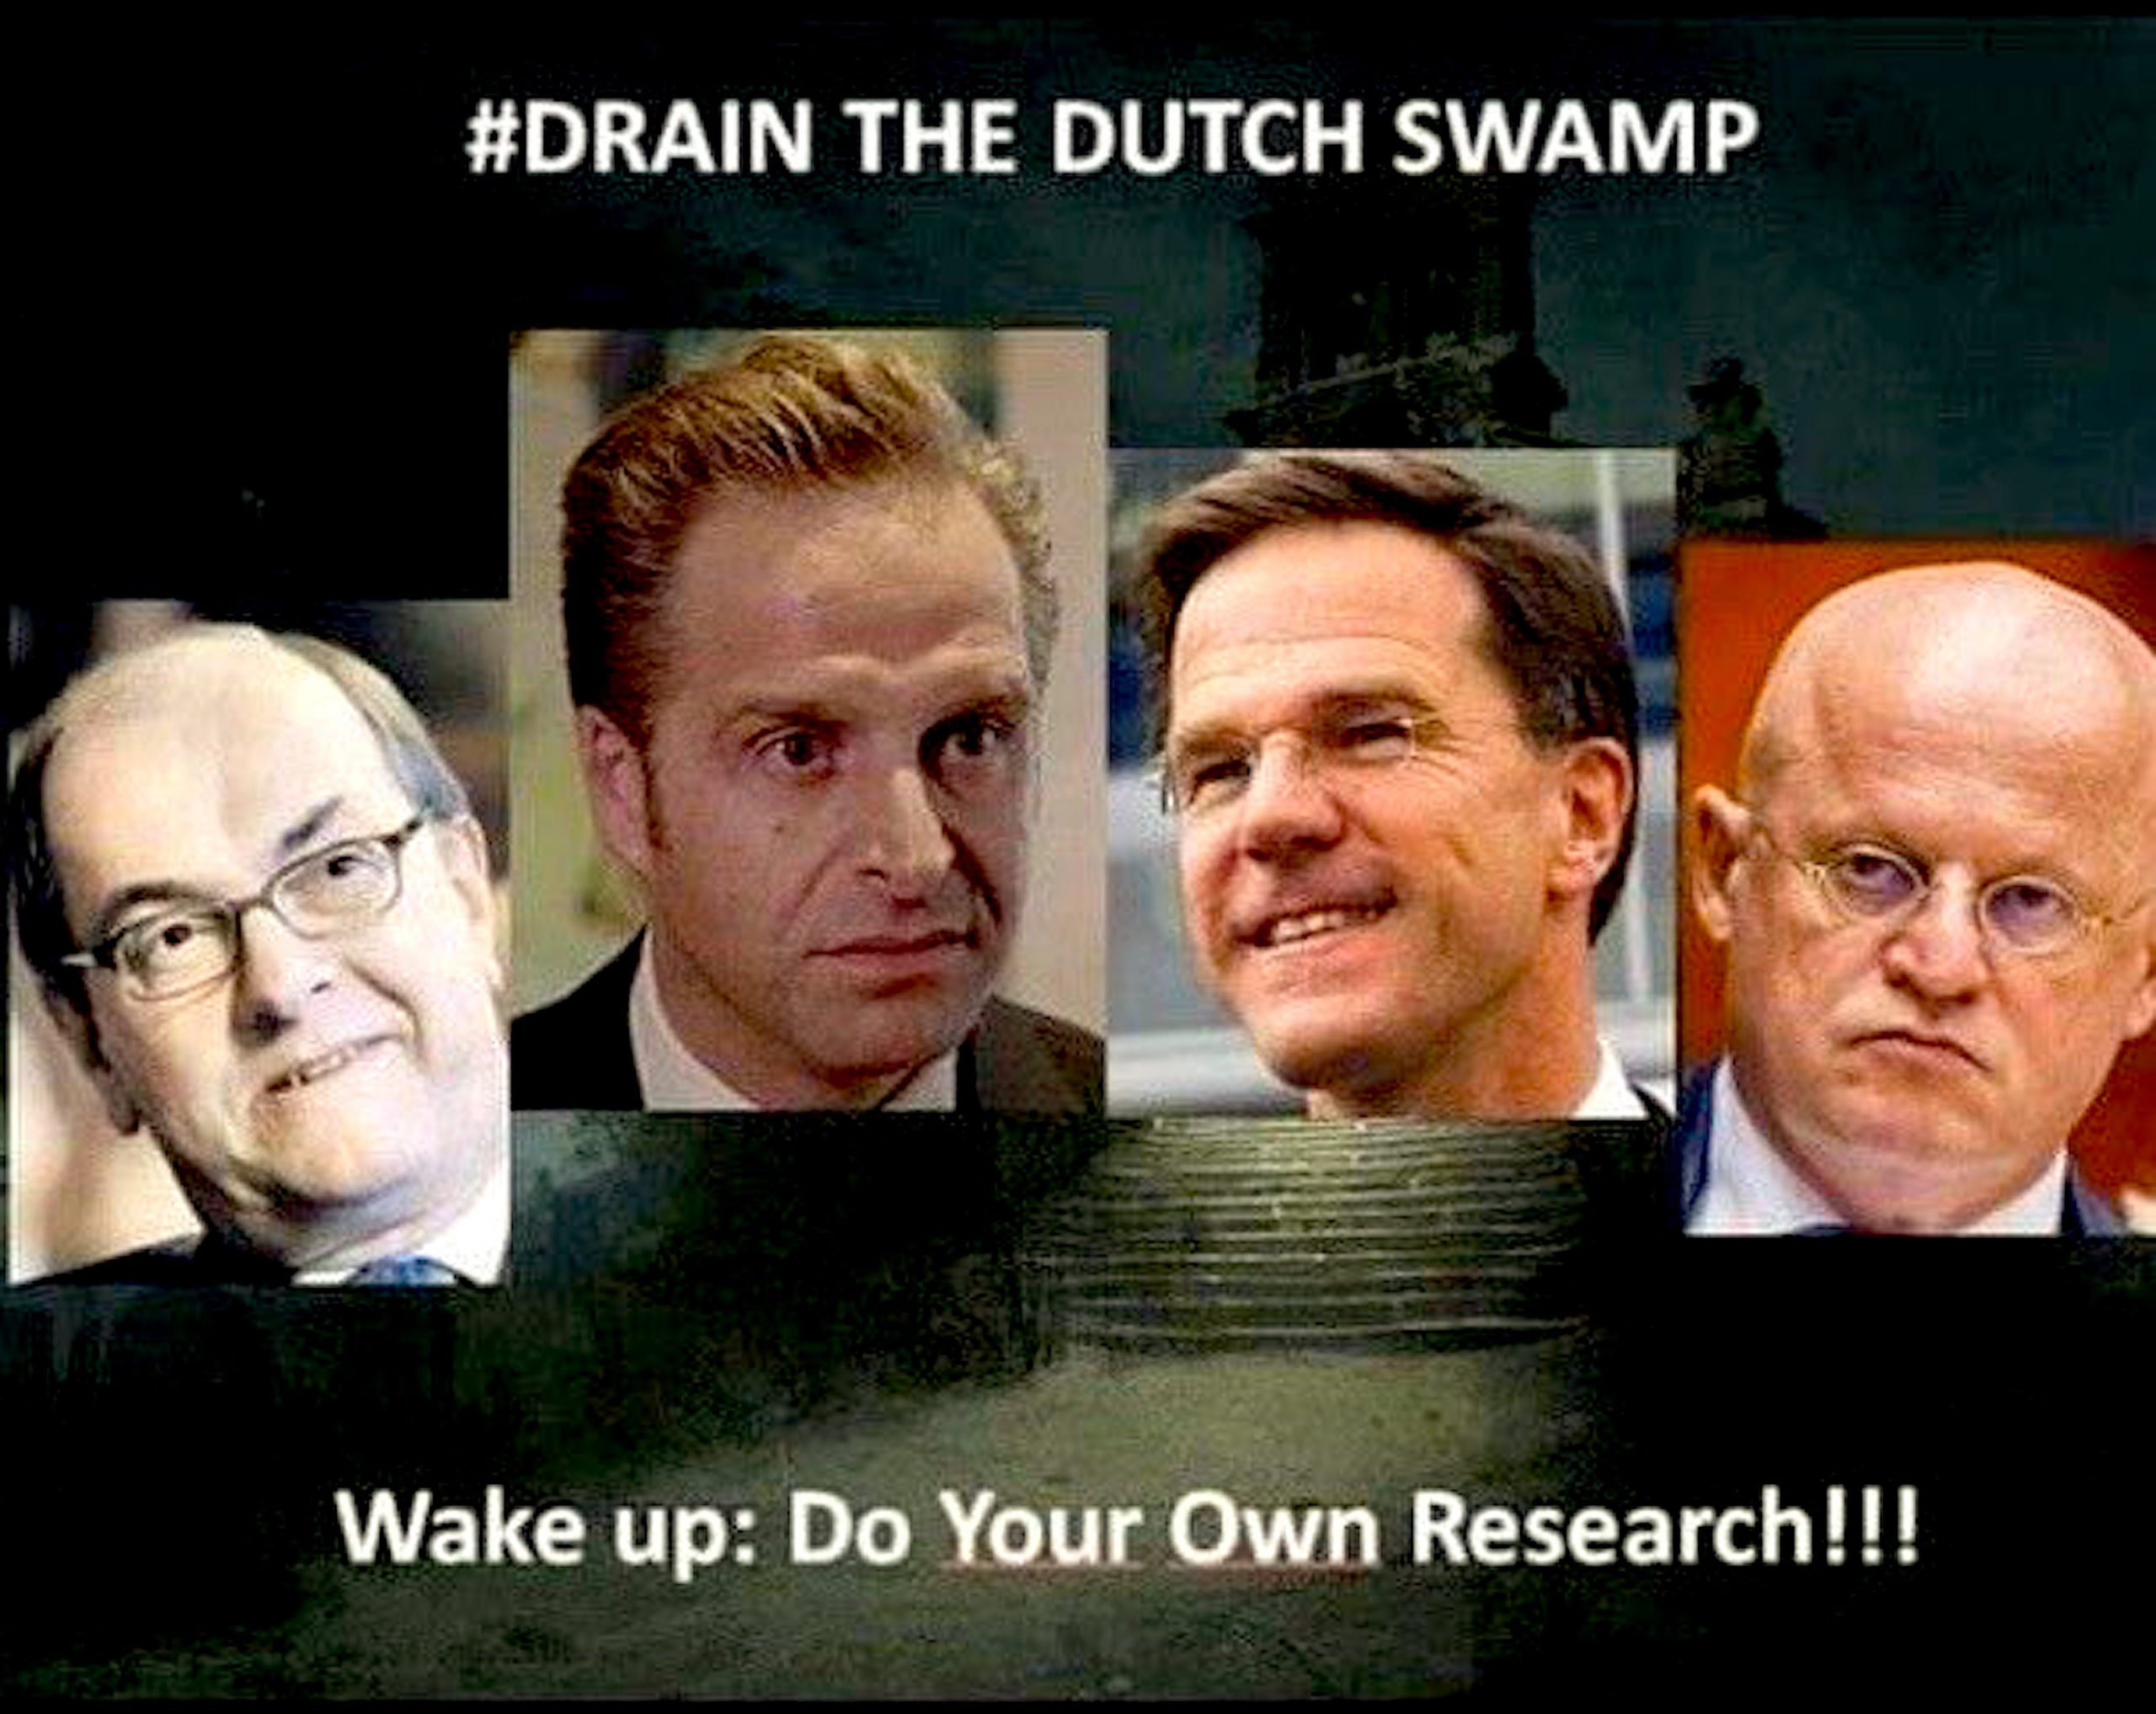 Drain The Dutch Swamp (foto Twitter)